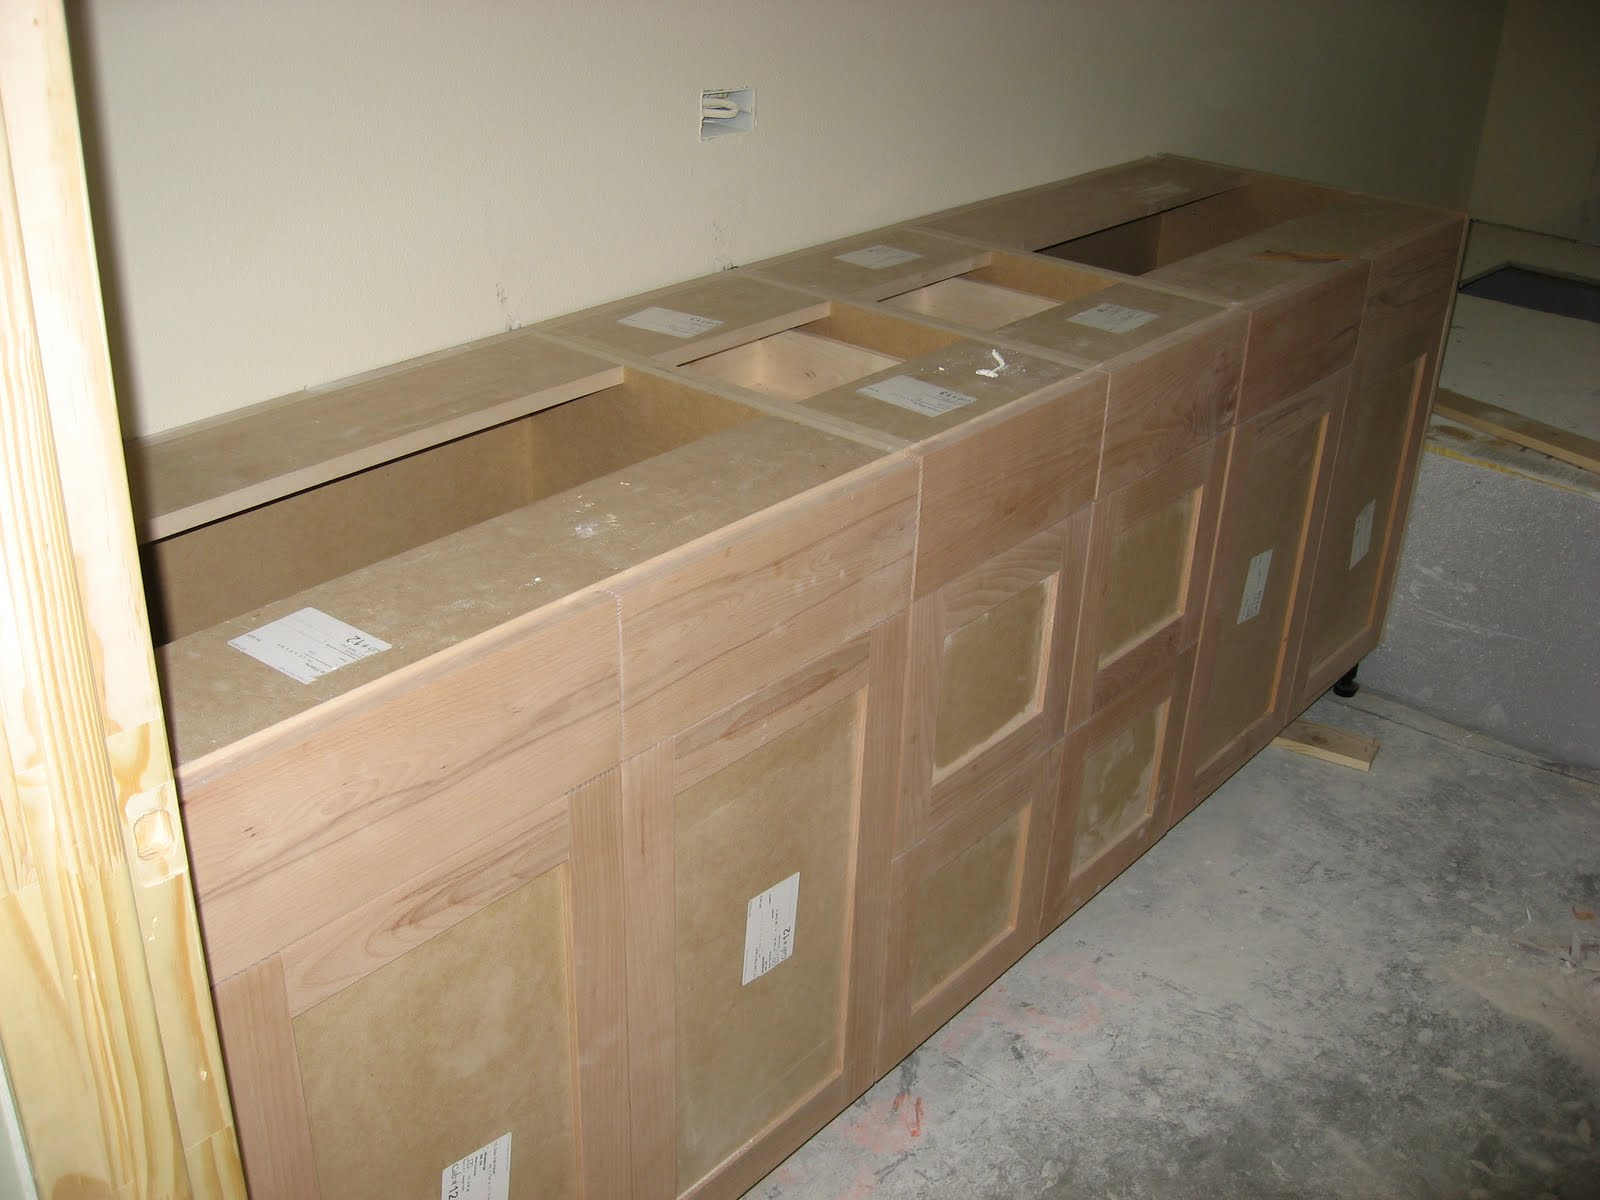 Paint Grade Cabinets Green House Good Life It Looks So Much More Finished With The